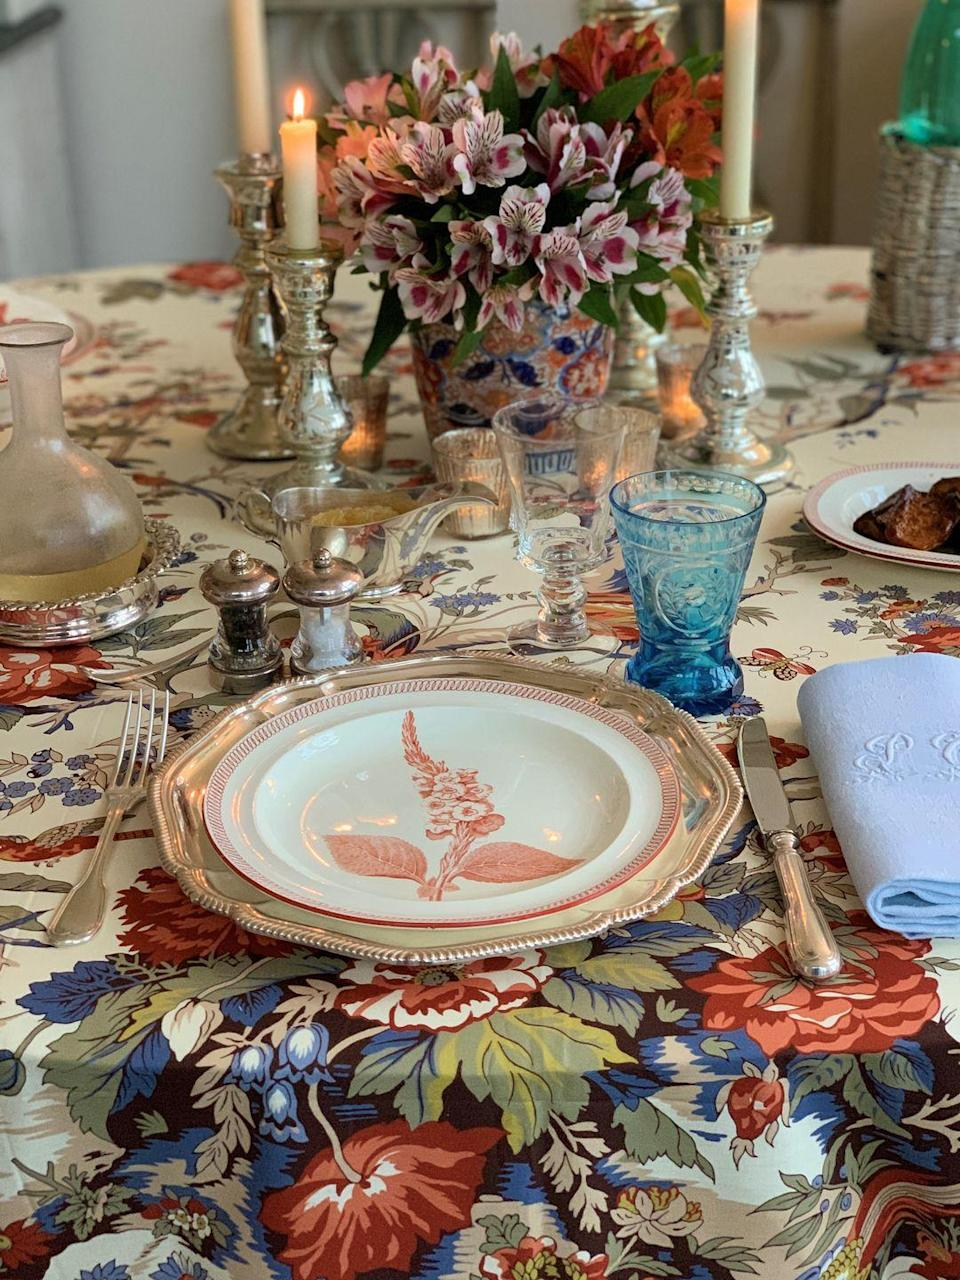 """<p>Paolo Moschino's fall tablescape includes a colorful antique statement vessel that perfectly compliments the patterned tablecloth, available soon online at <a href=""""https://nicholashaslam.com/"""" rel=""""nofollow noopener"""" target=""""_blank"""" data-ylk=""""slk:Paolo Moschino for Nicholas Haslam"""" class=""""link rapid-noclick-resp"""">Paolo Moschino for Nicholas Haslam</a>.</p>"""